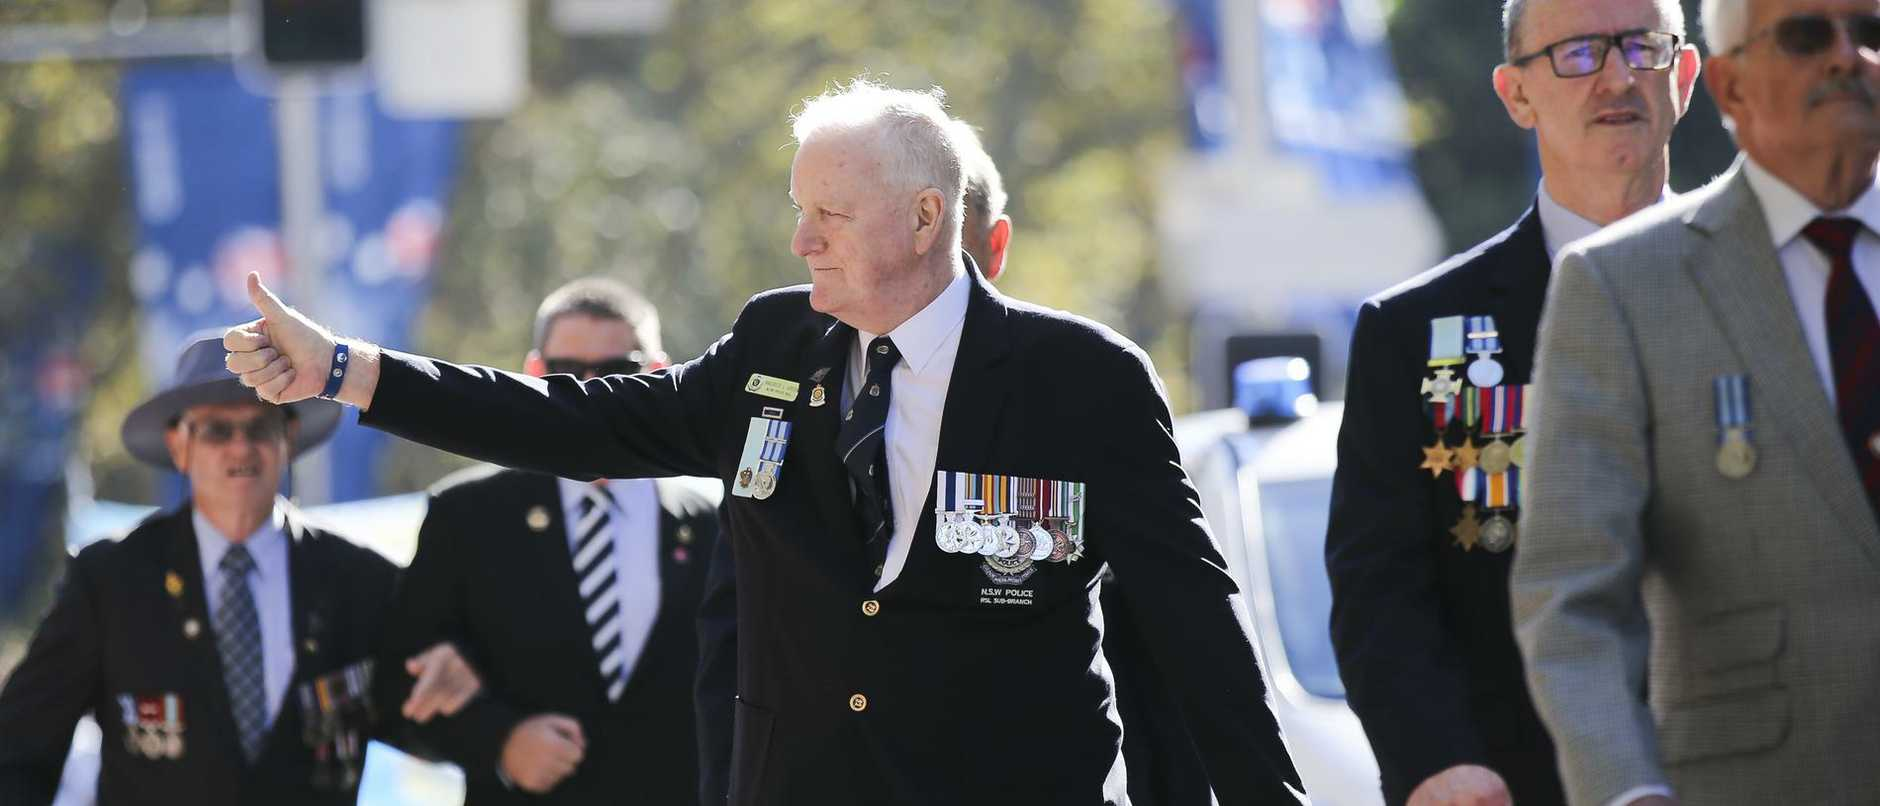 Sydney's Anzac Day parade will go ahead this year but will be restricted to 500 veterans.